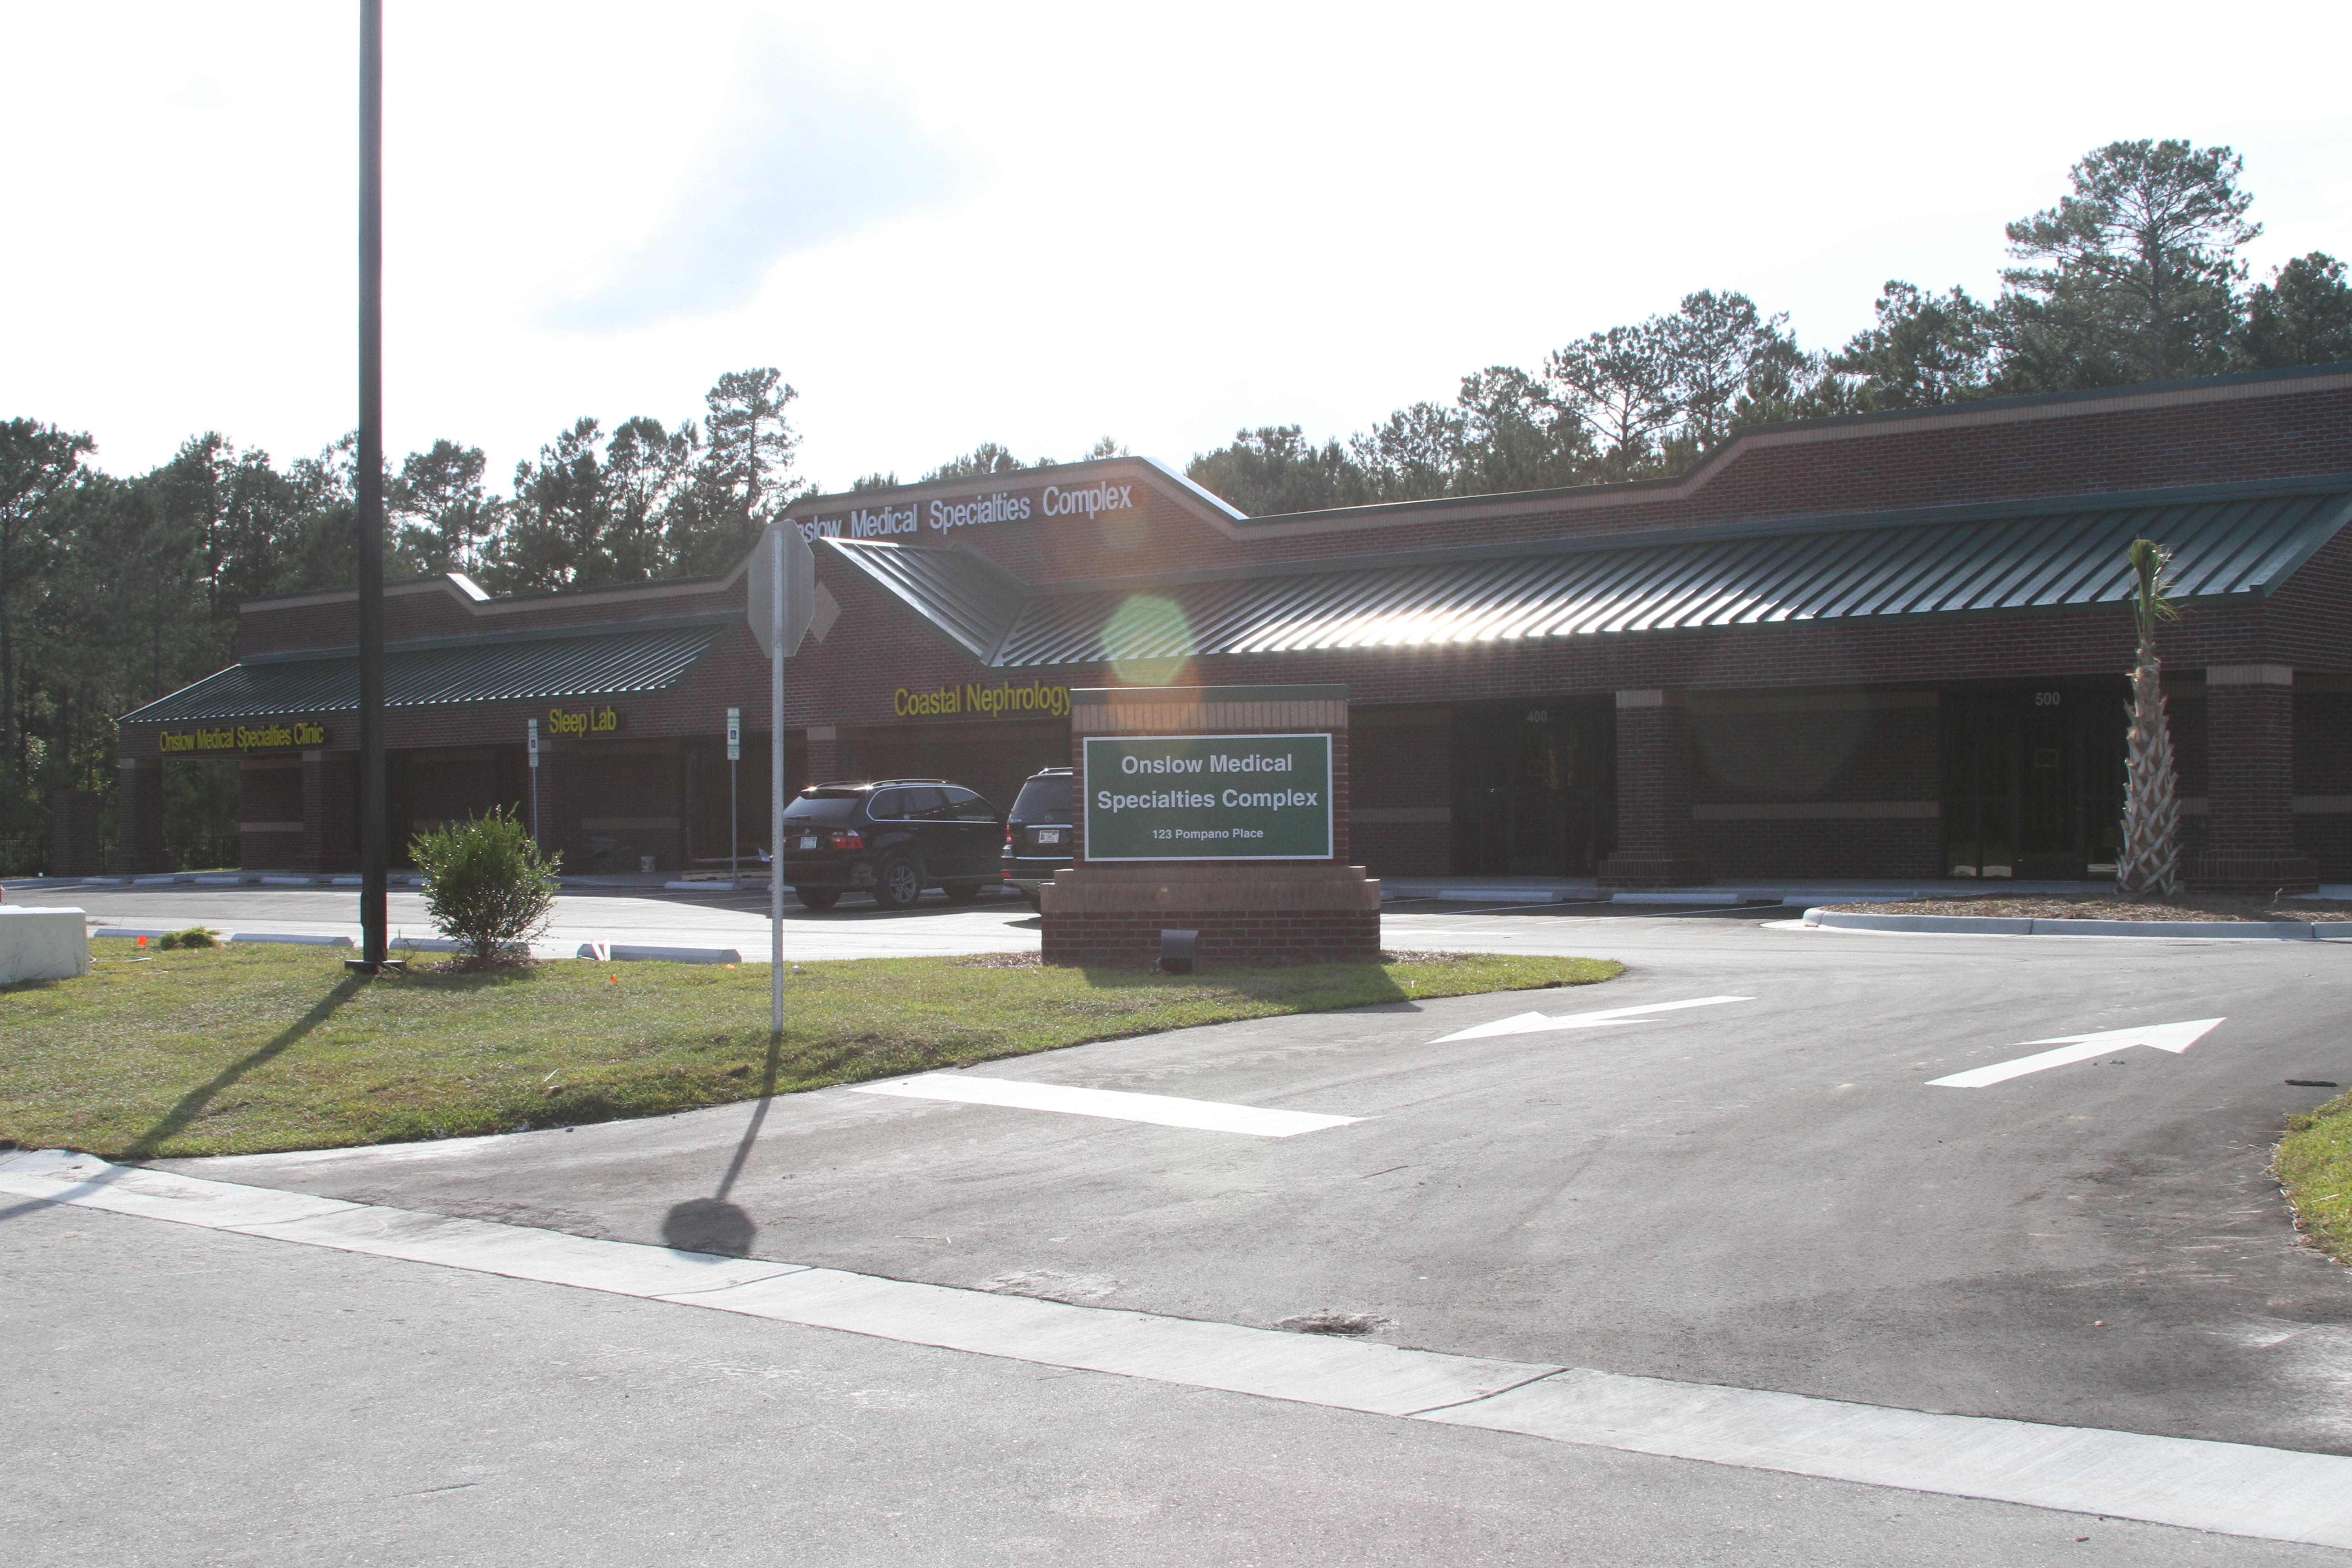 Onslow Medical Specialties Clinic image 8